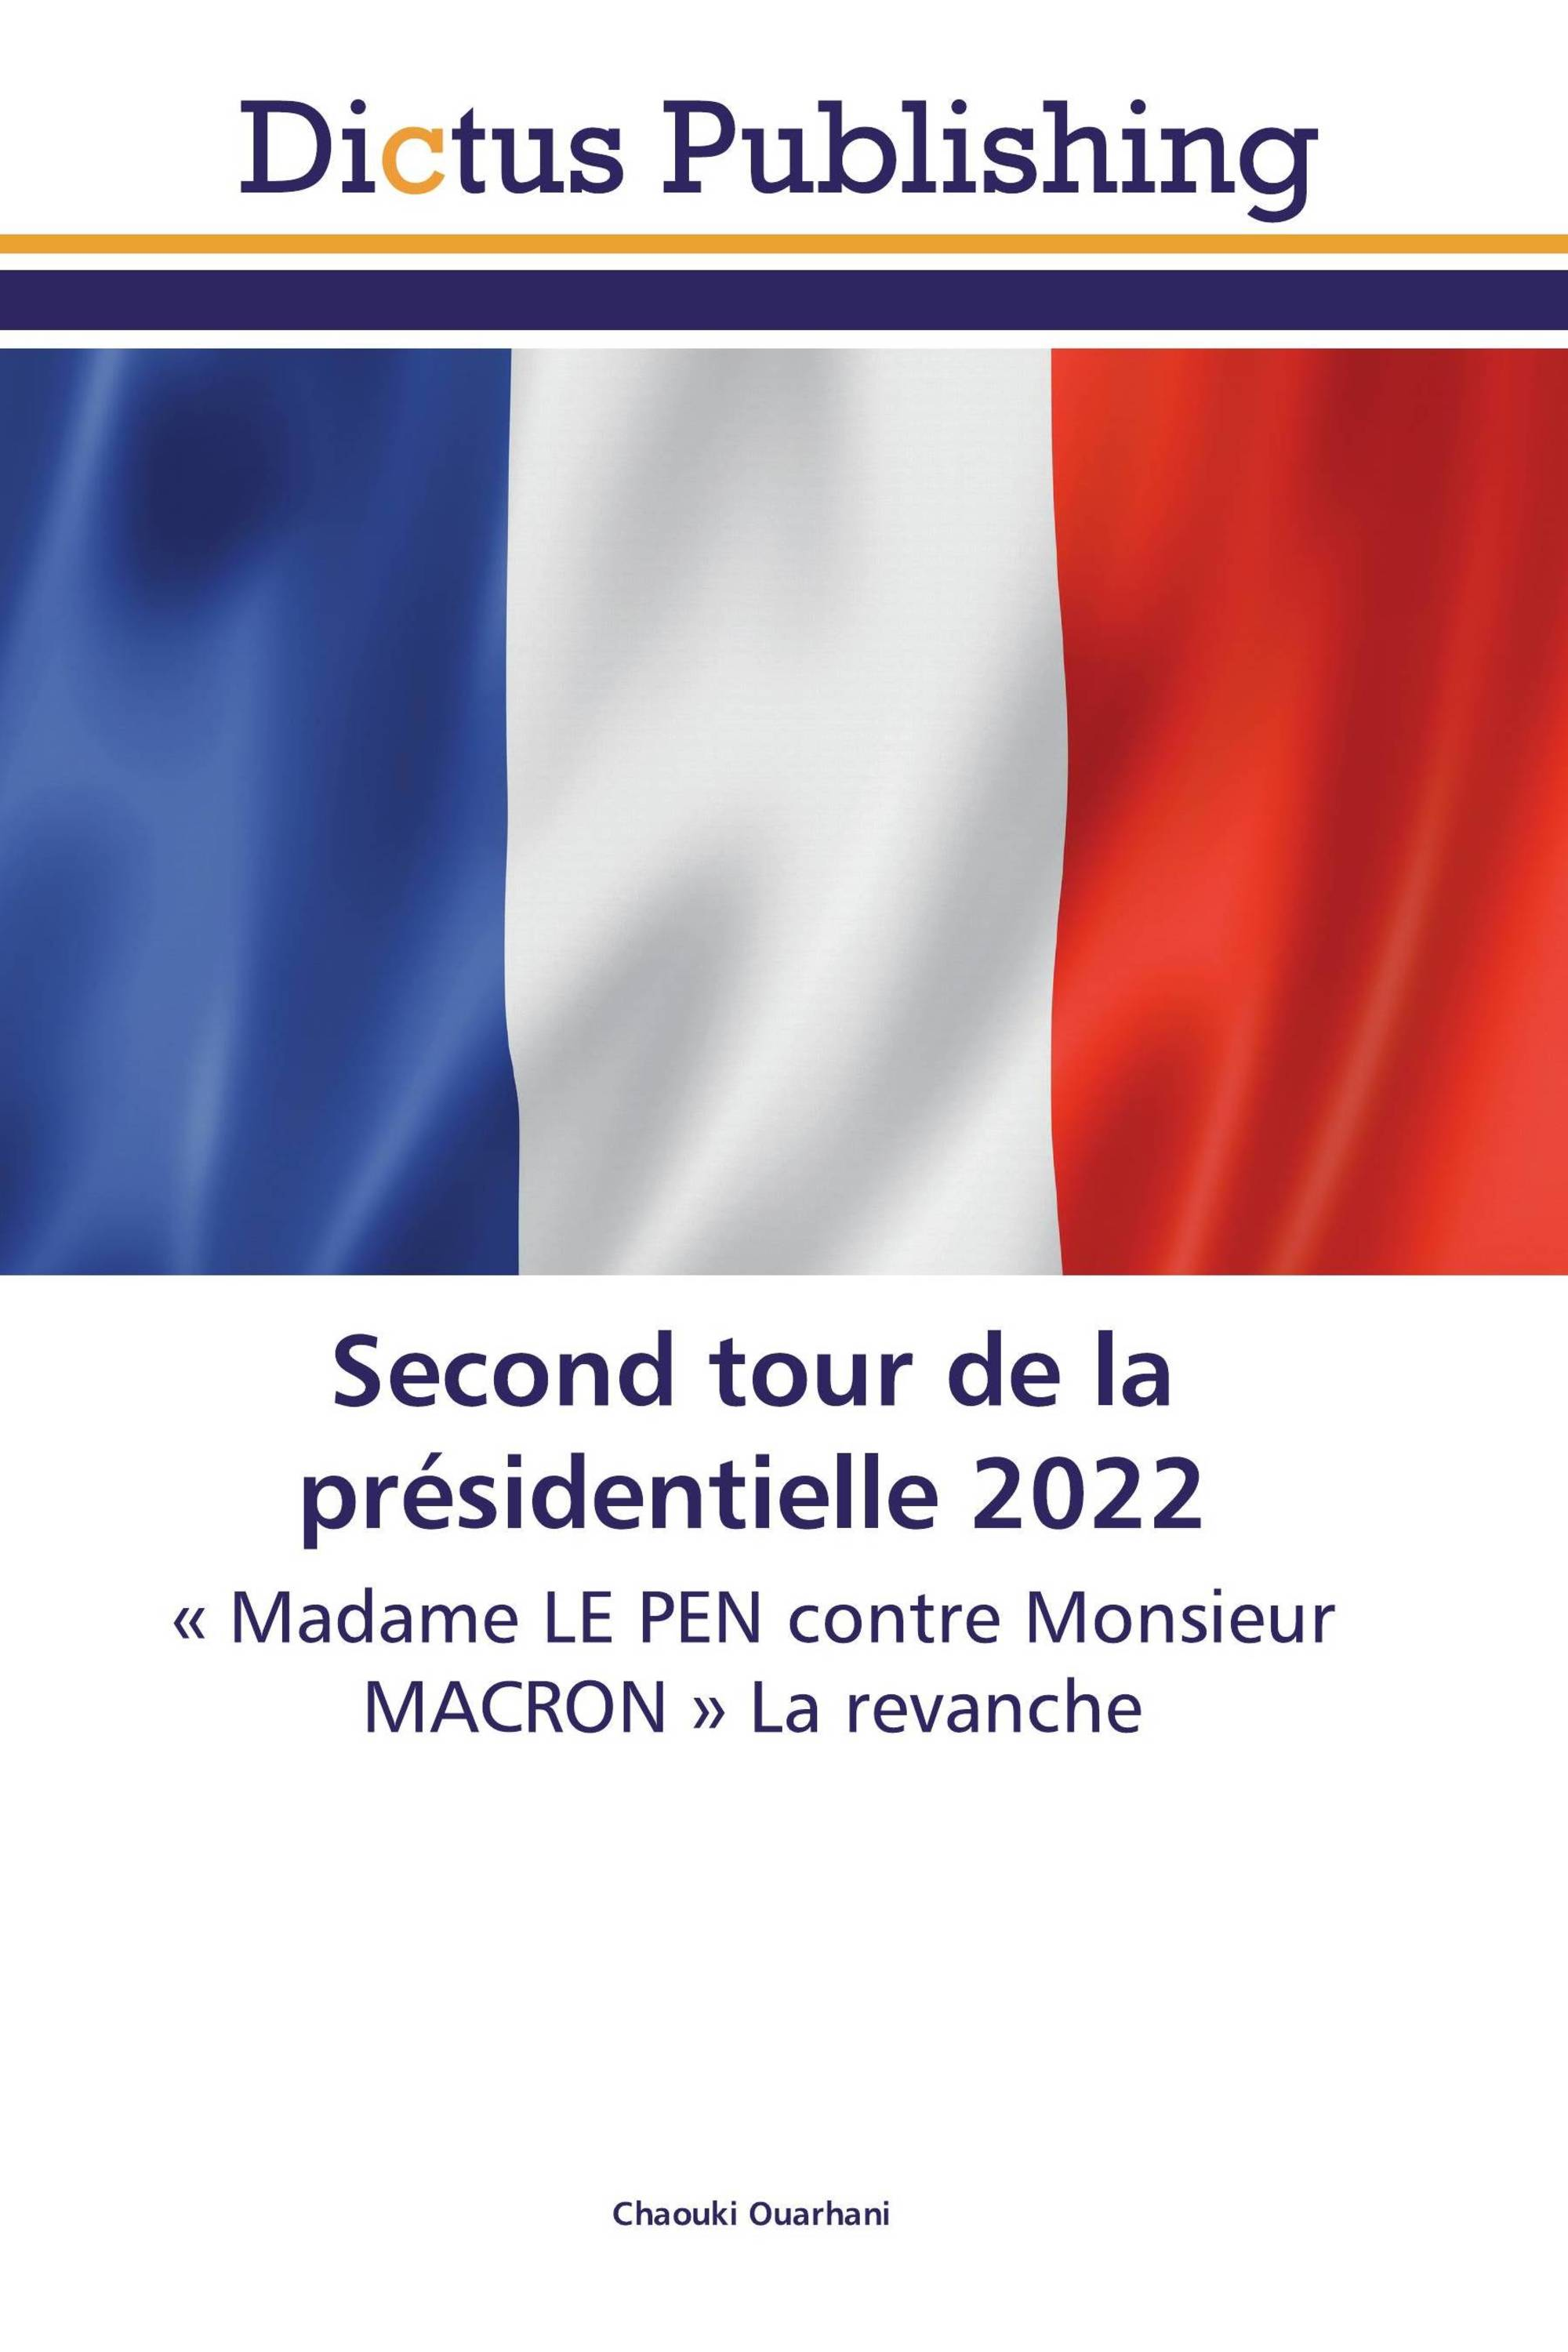 Second tour de la présidentielle 2022